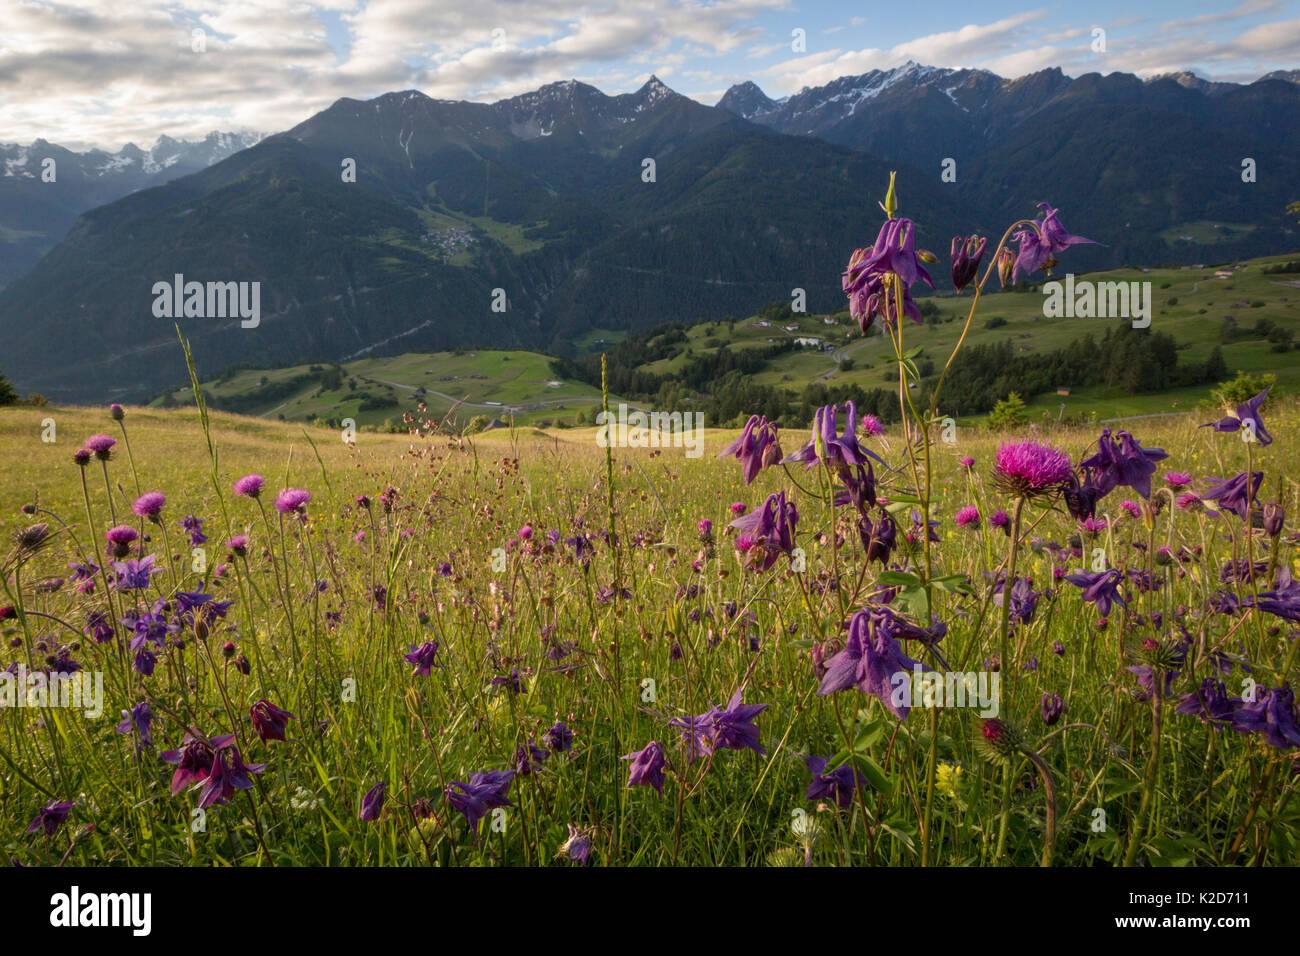 Dark Columbine (Aquilegia atrata) and Tuberous Thistle (Cirsium tuberosum) flowering in tradional hay meadow. Nordtirol, Austrian Alps. June. - Stock Image